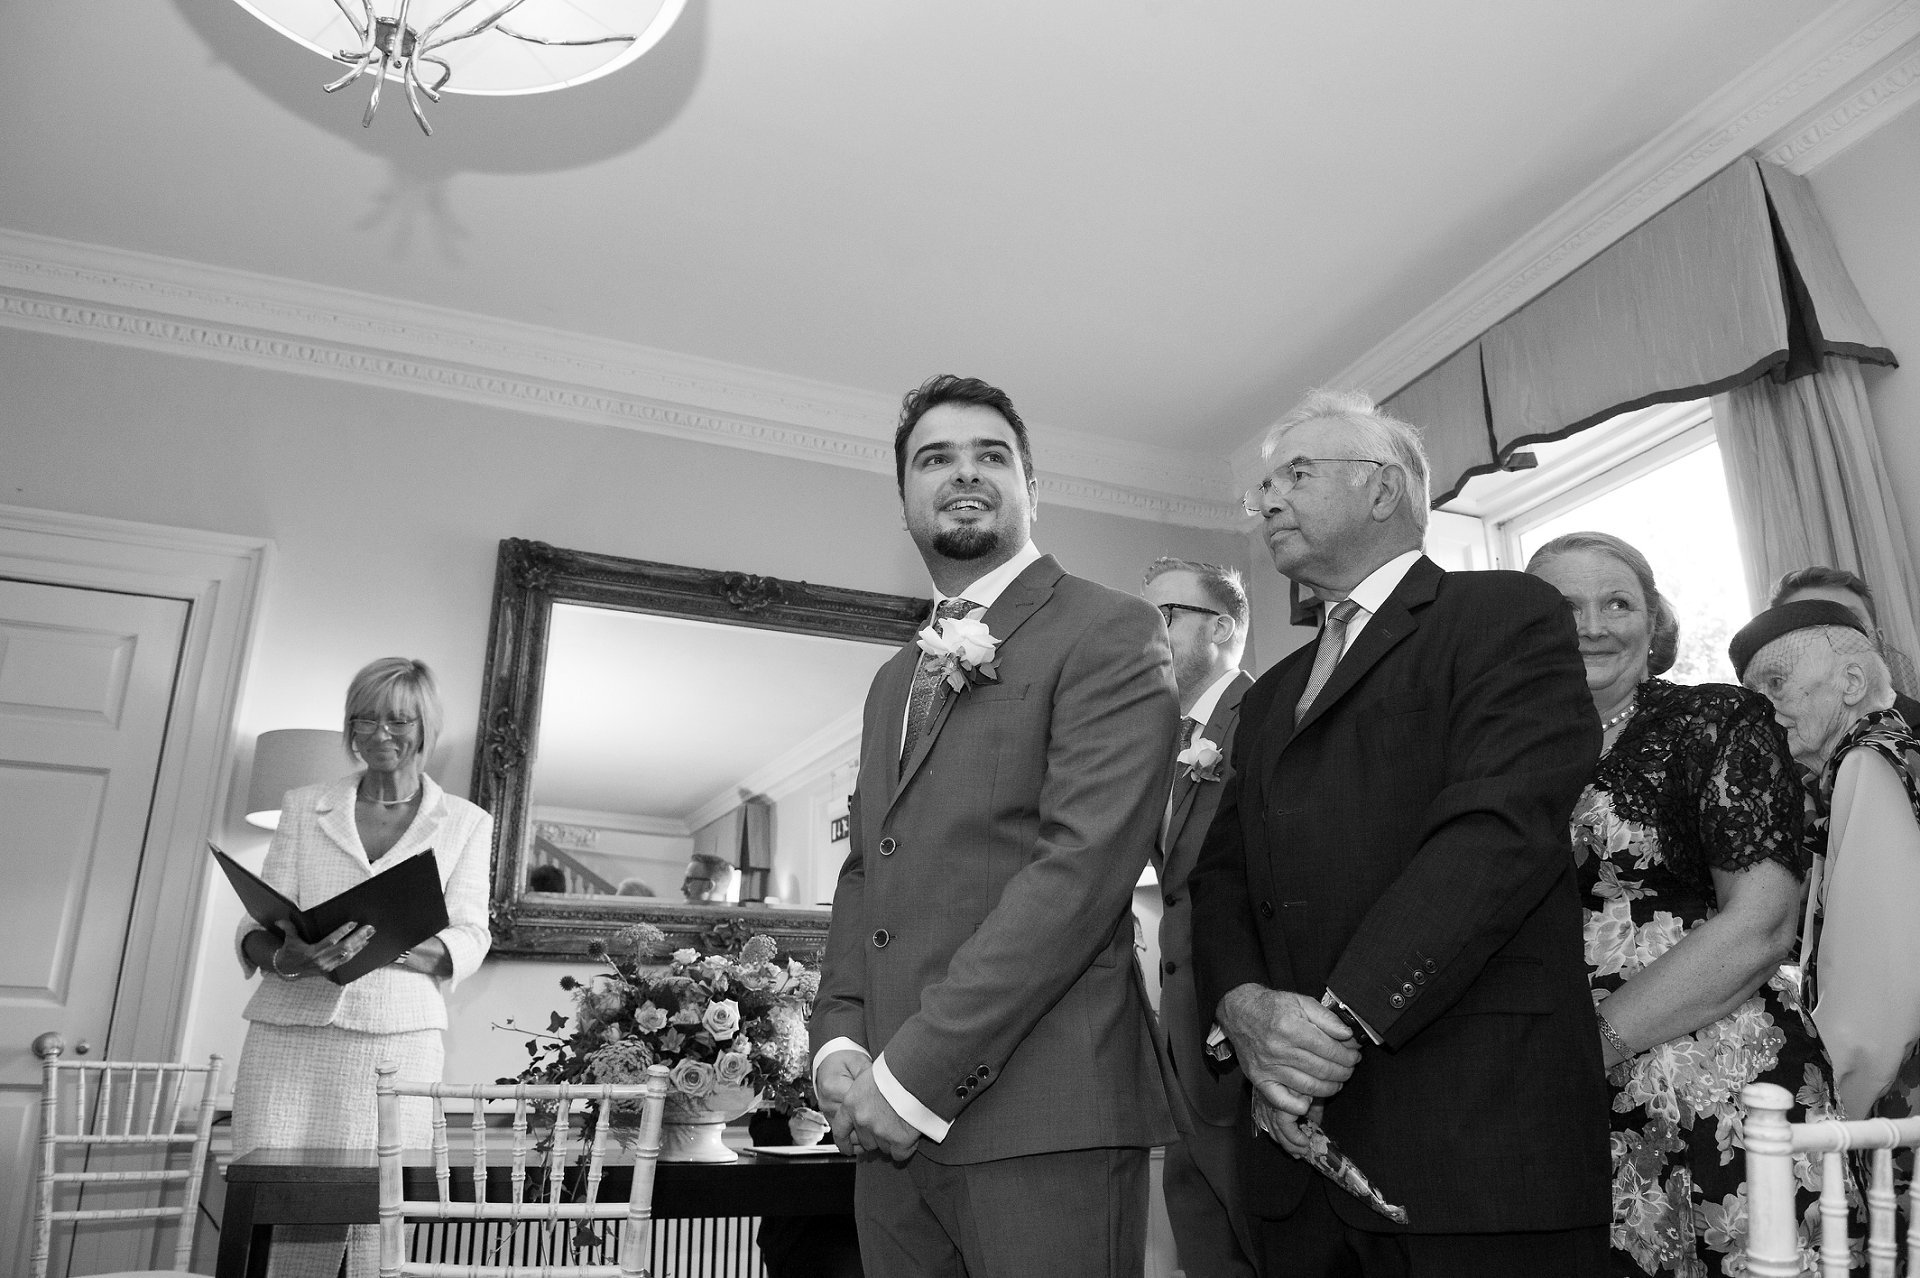 Wedding ceremony in the Willow Room at Morden Hall, perfect wedding venue for up to 120 guests